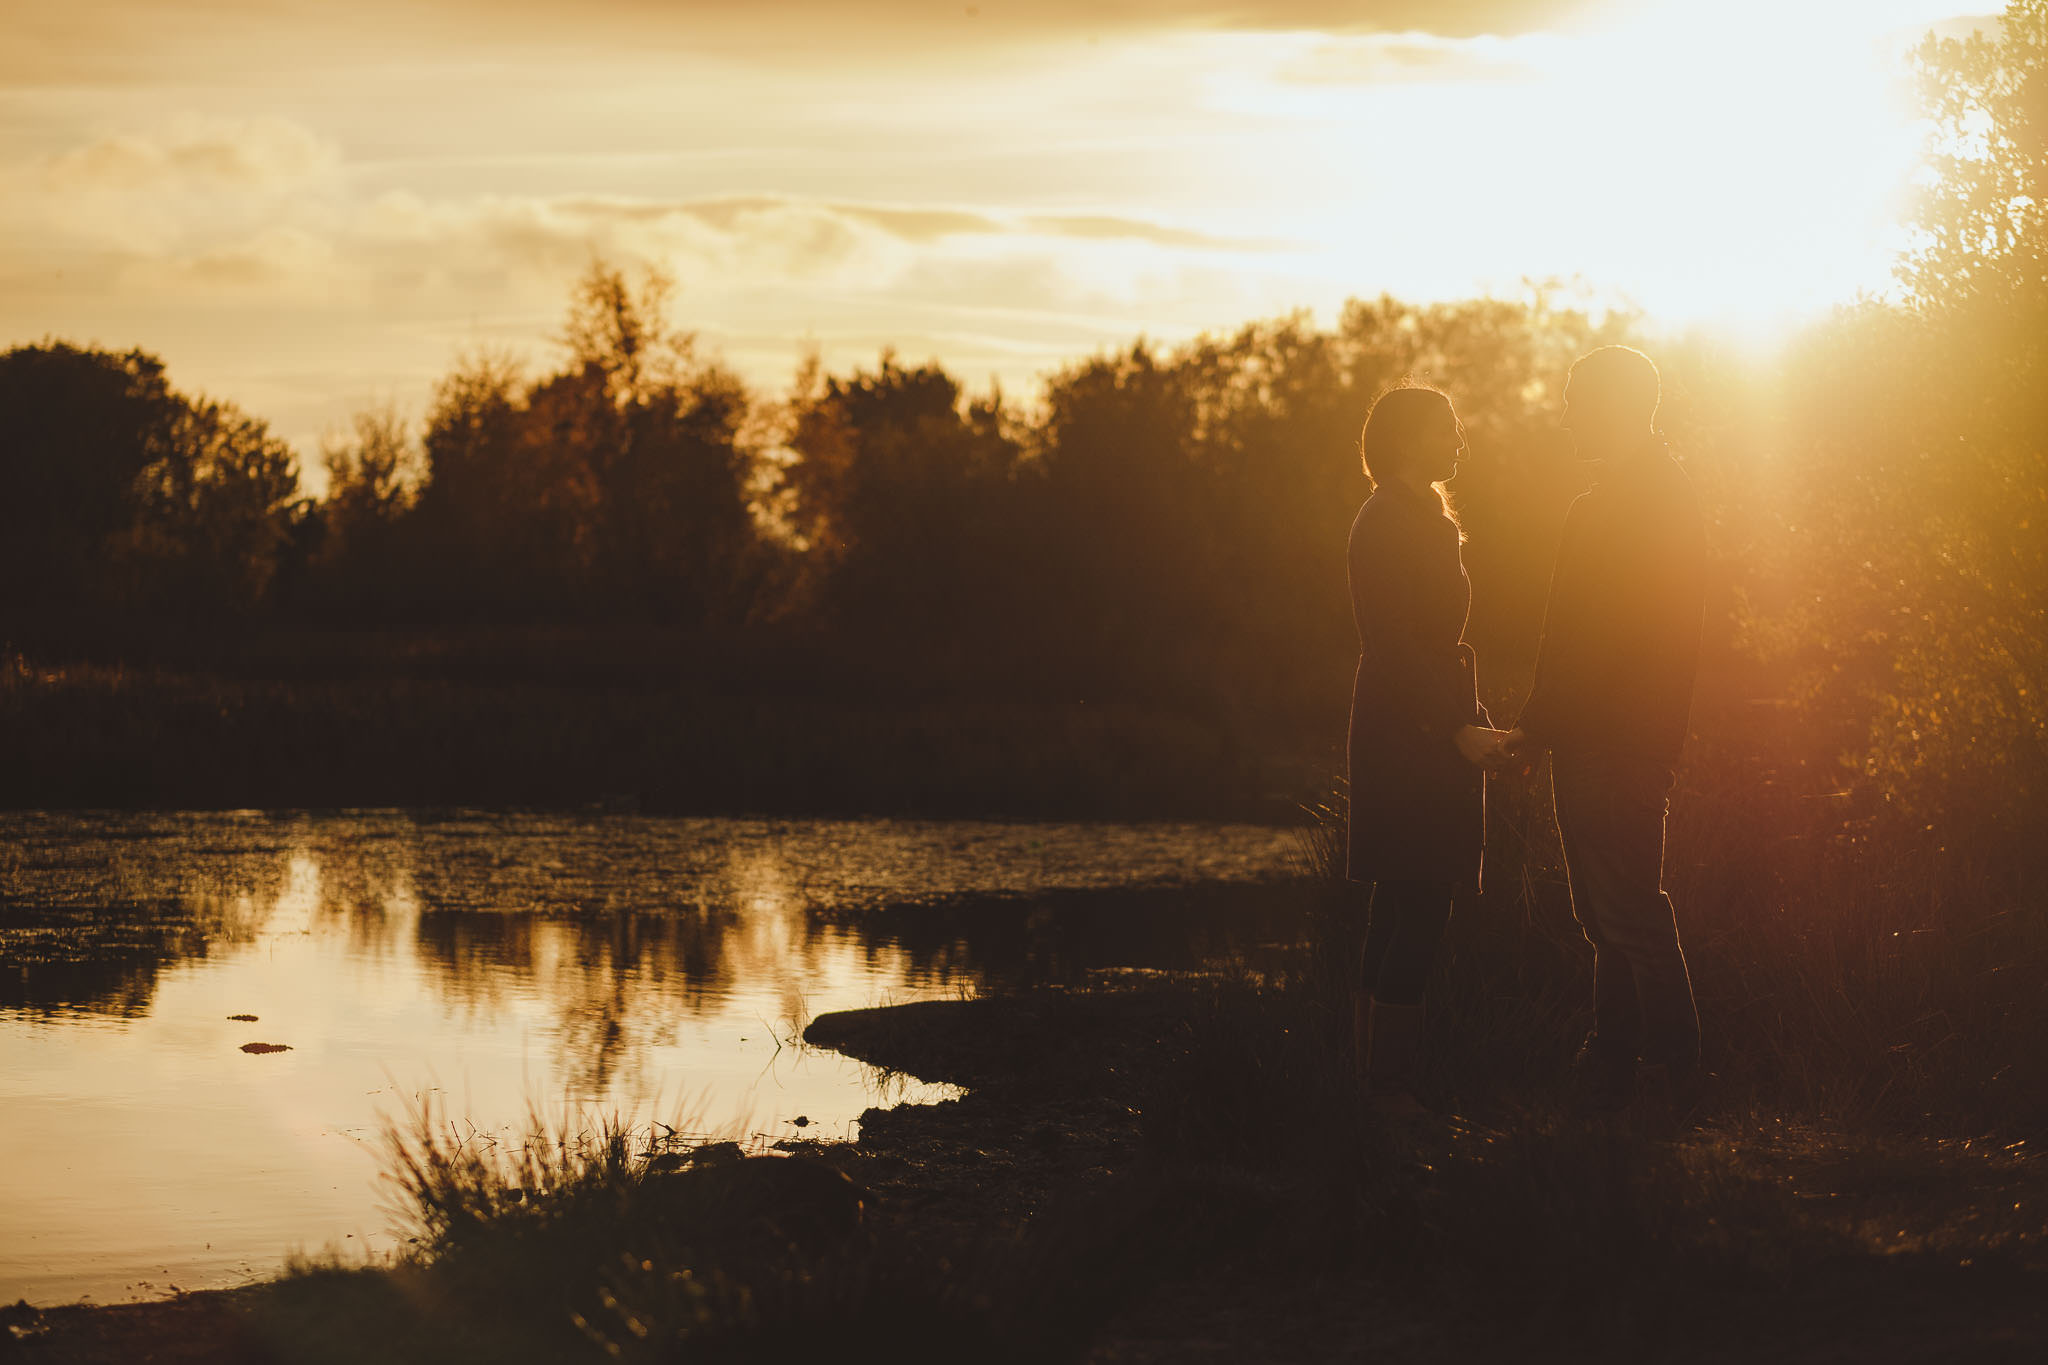 Sun drenched photo of an engaged couple holding hands near a lake